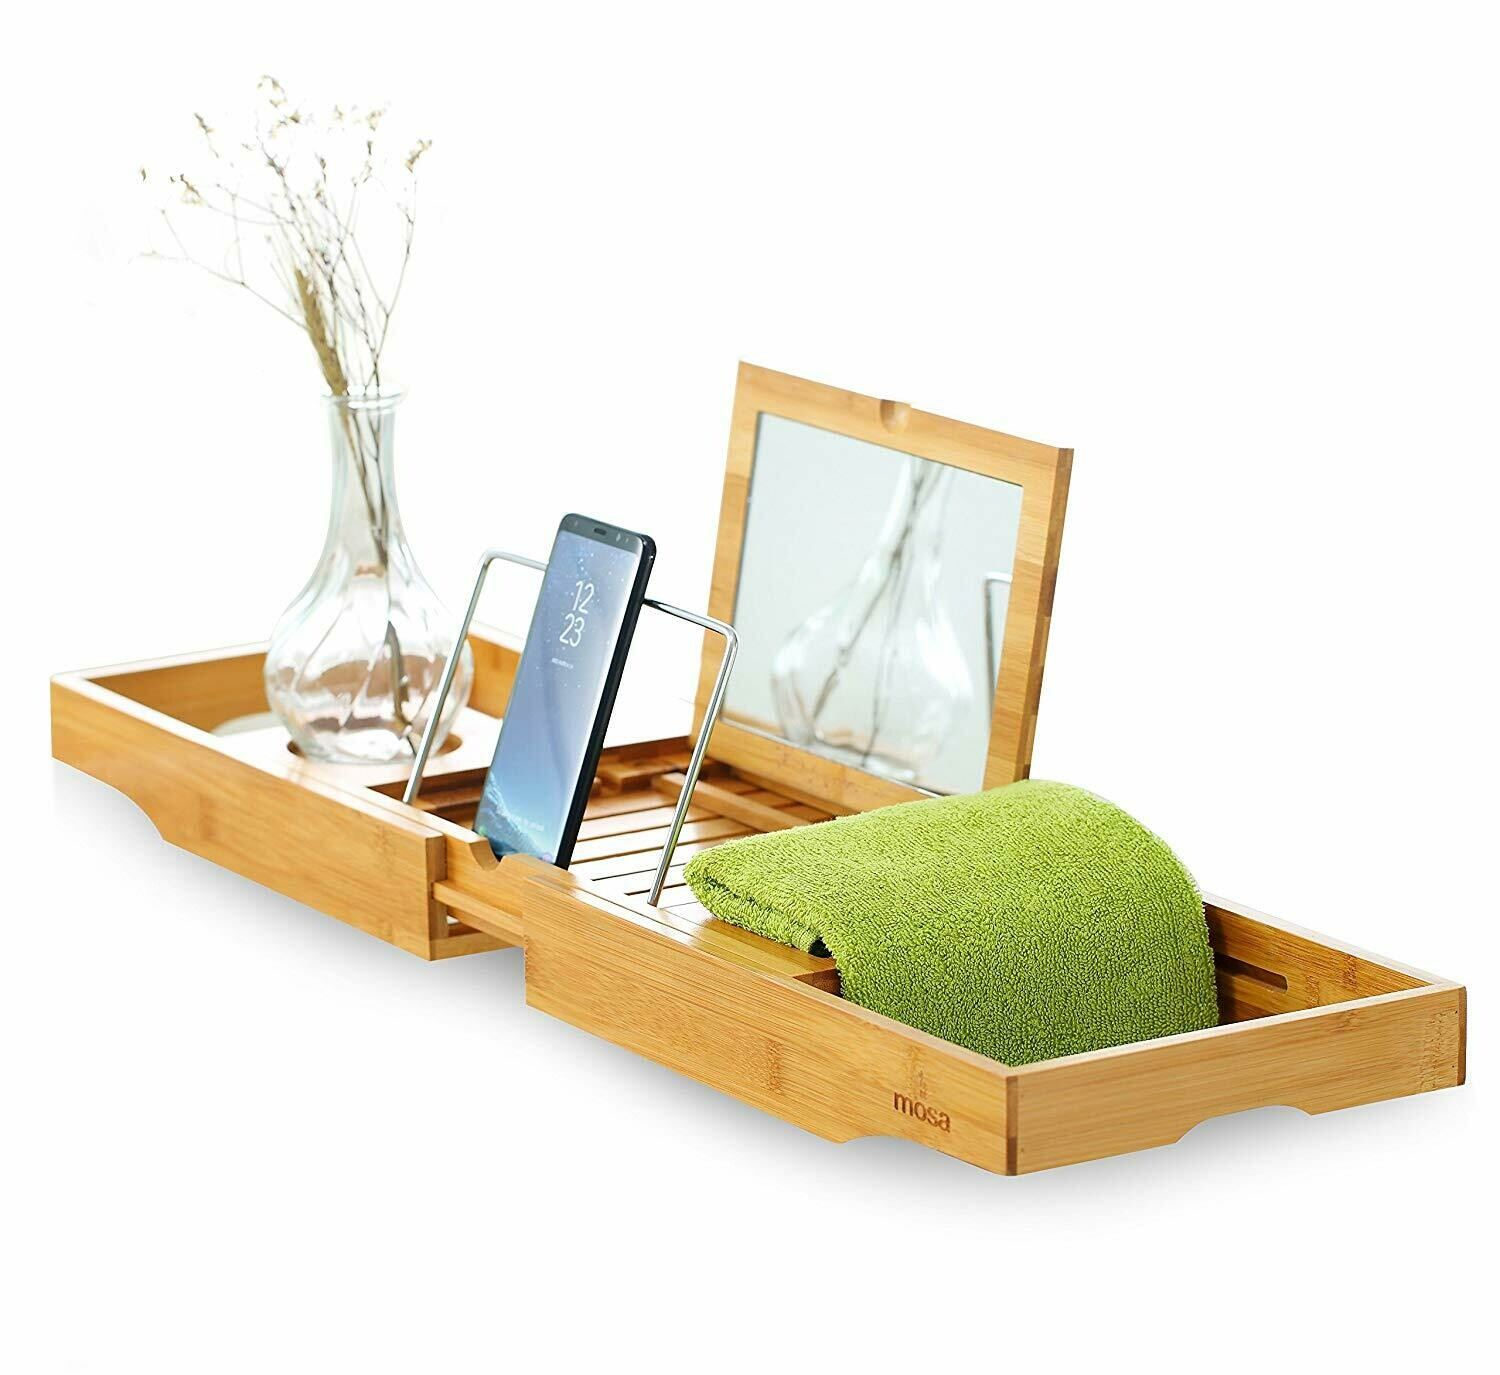 "Mosa Natural Bamboo Bathtub Tray Bath Caddy Book Wine Glass Holder, 27.6"" X 8.7"" X 1.9"","